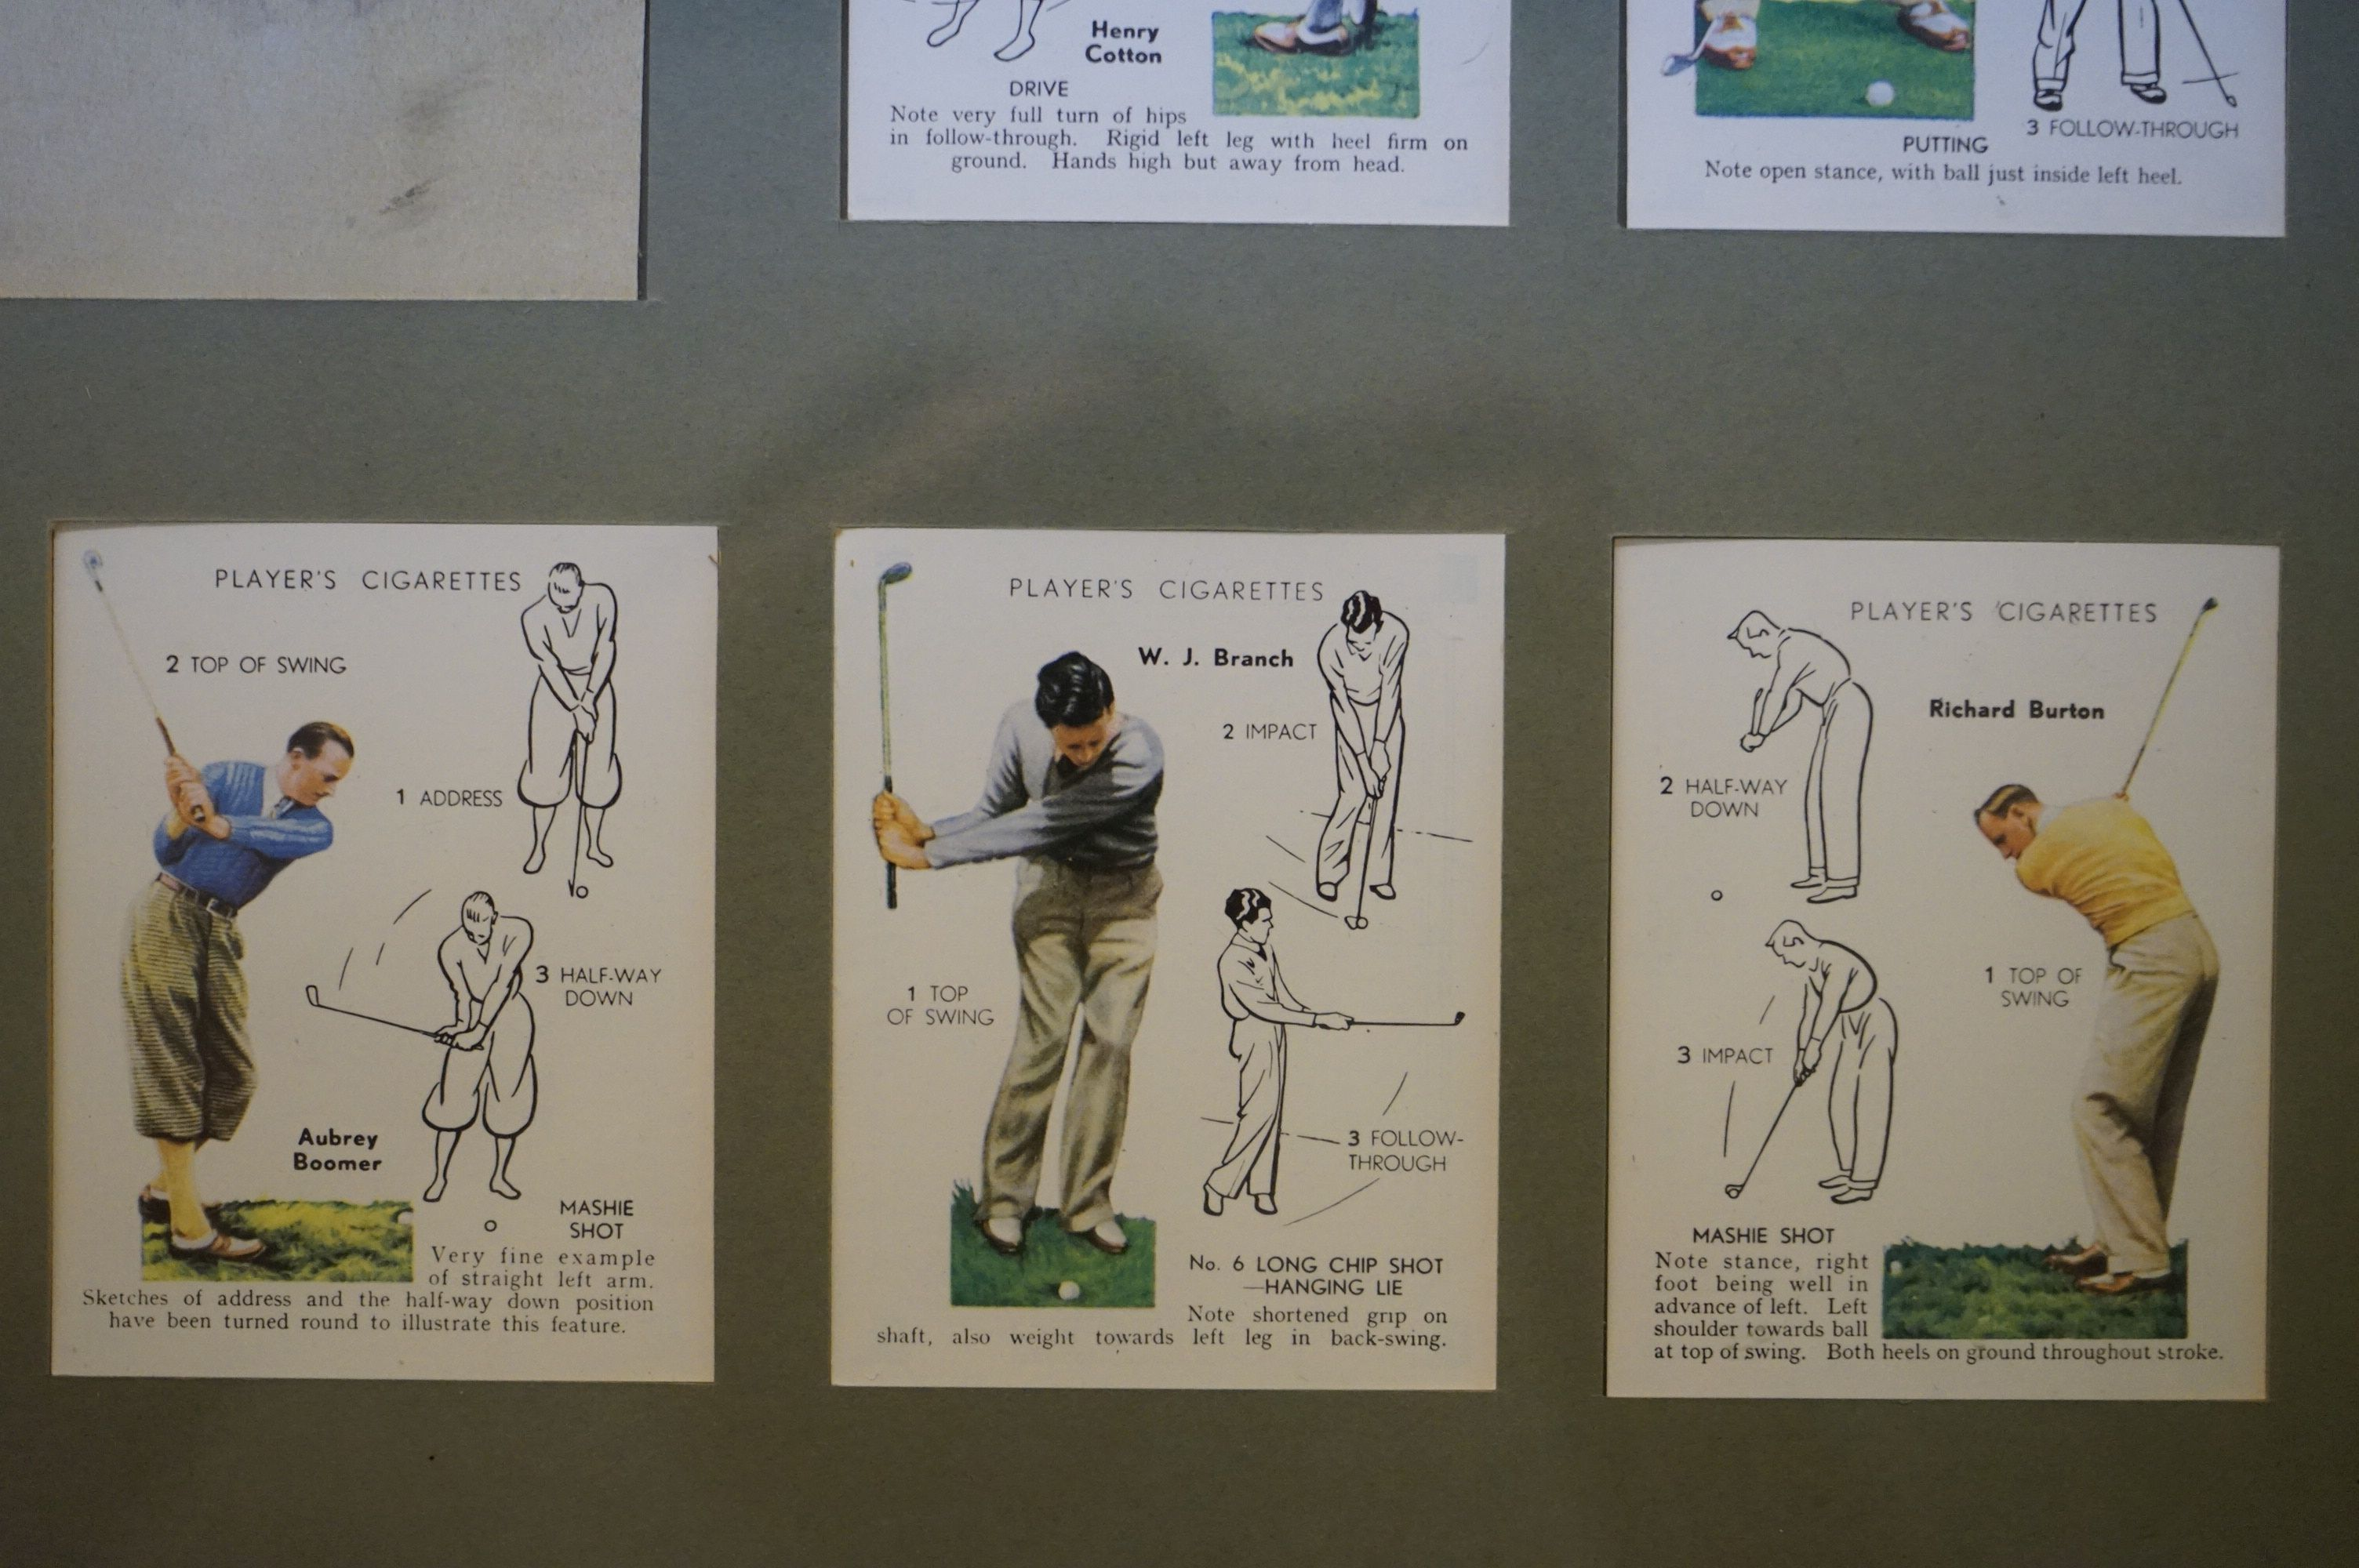 Golf - a John Player commemorative picture portraying famous golfers and their play methods - Image 4 of 6